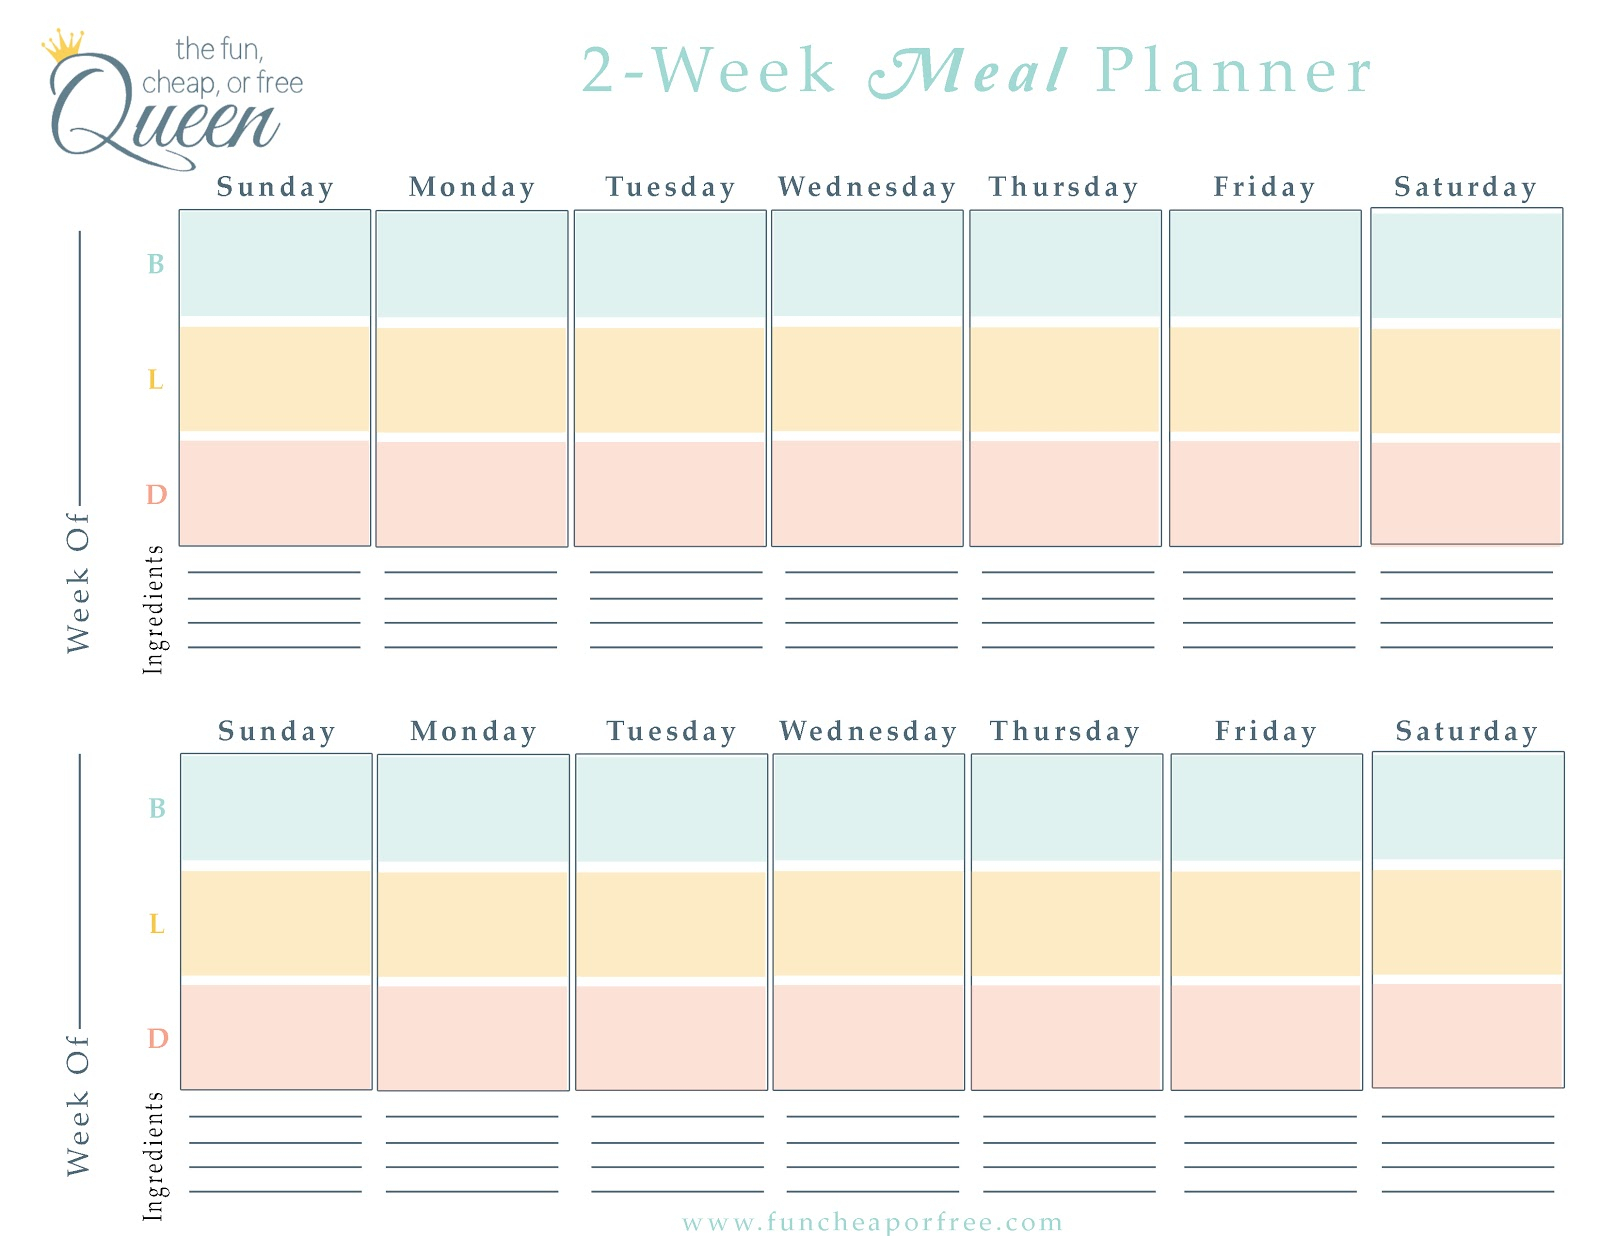 005 Plan Template Wk Meal Planner ~ Tinypetition inside 2 Week Work Schedule Templates